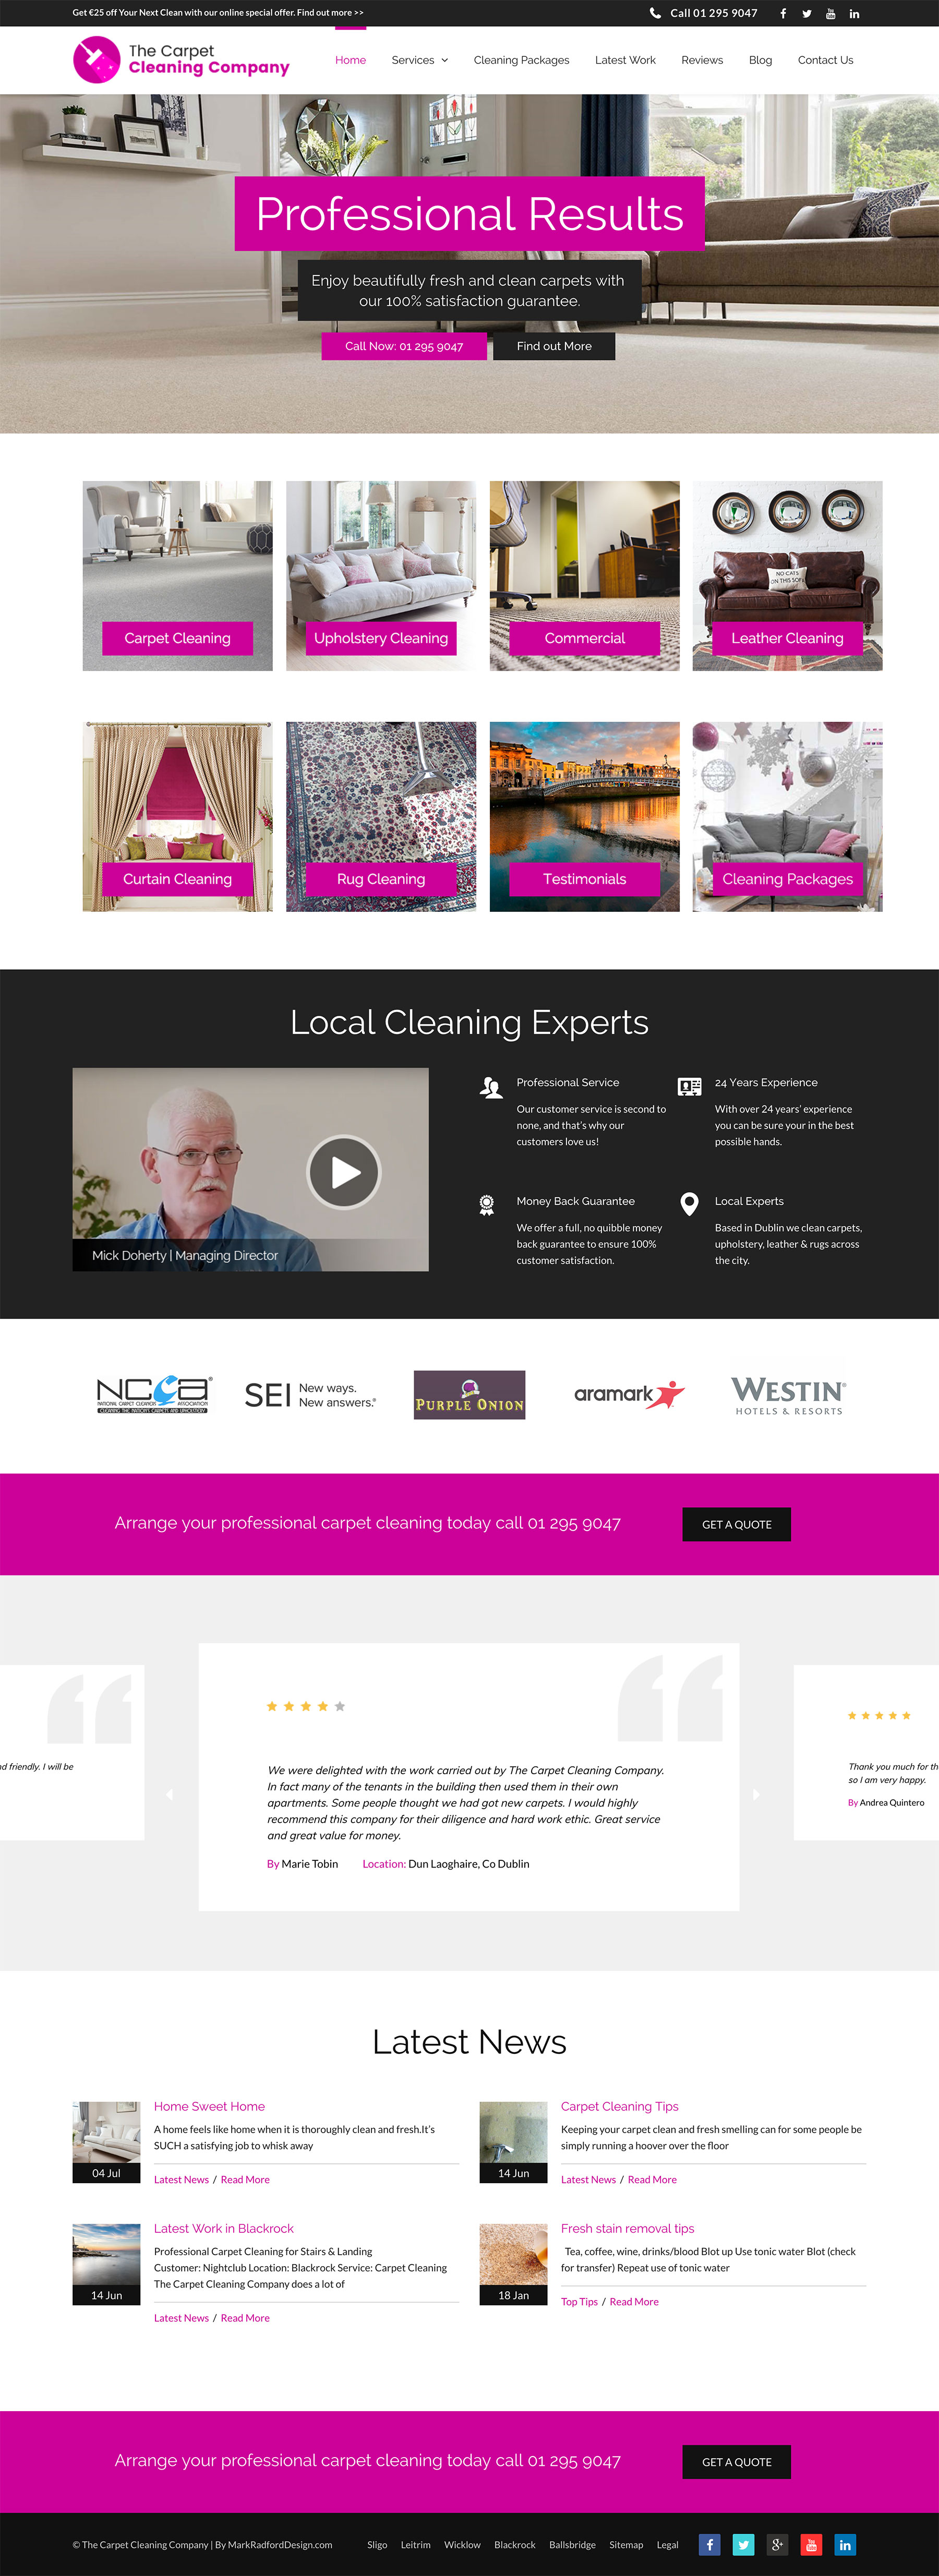 The Carpet Cleaning Company Mark Radford Design